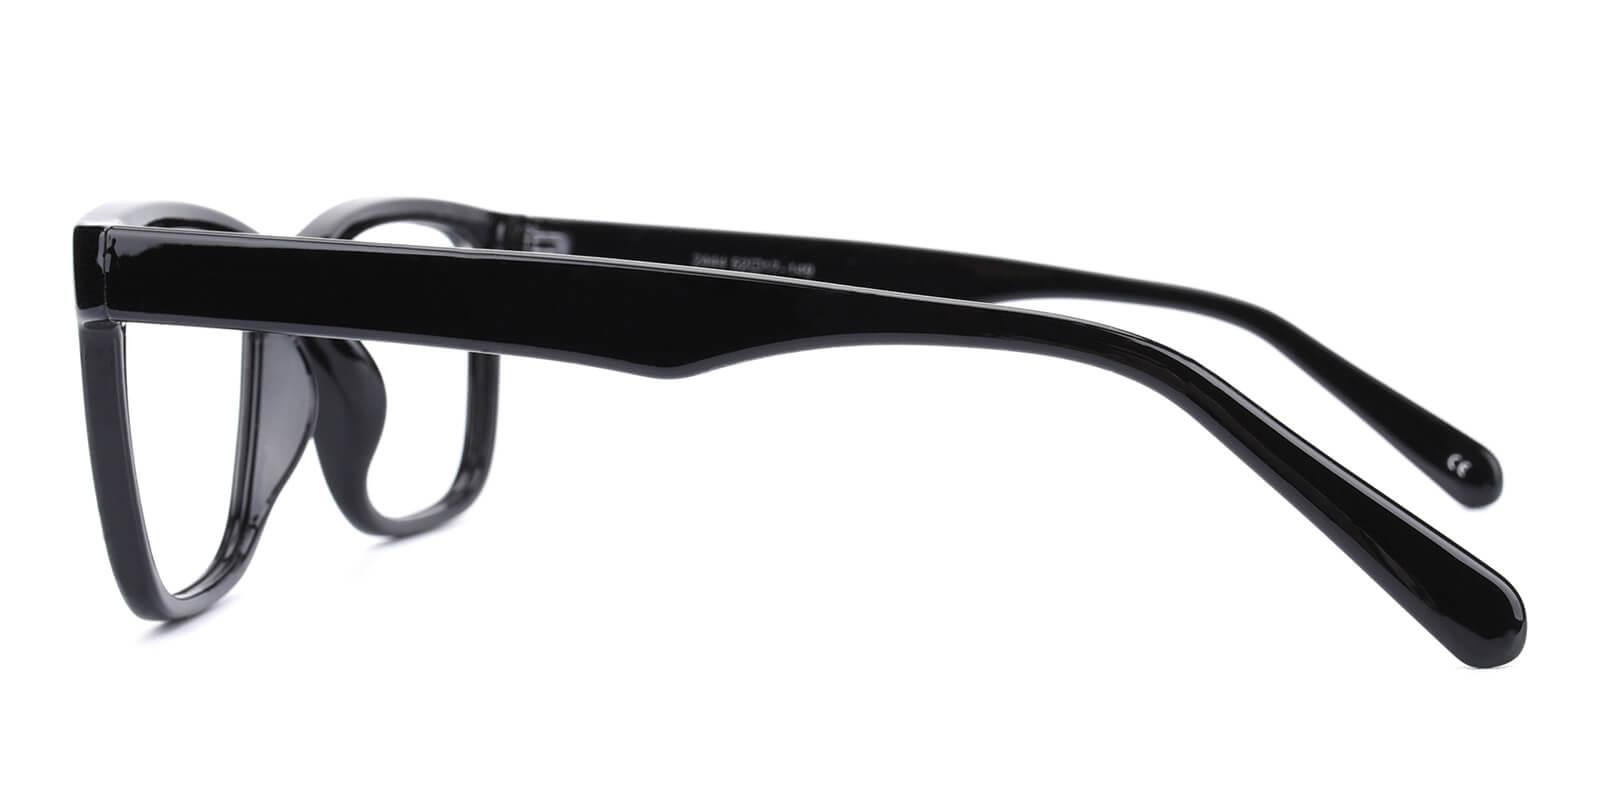 Colaan-Black-Square-Plastic-Eyeglasses-additional3